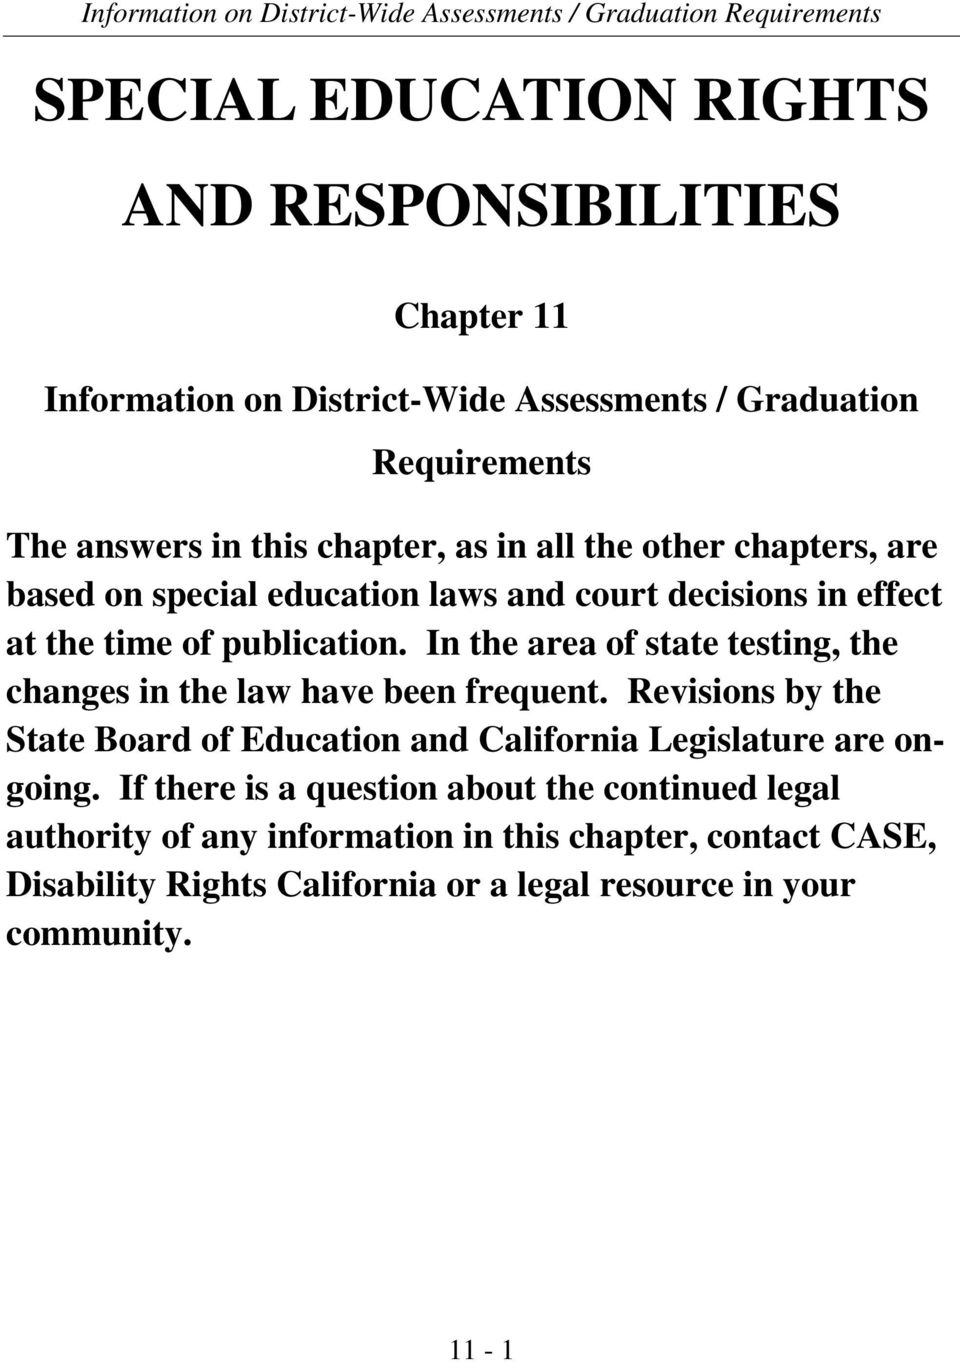 In the area of state testing, the changes in the law have been frequent. Revisions by the State Board of Education and California Legislature are ongoing.